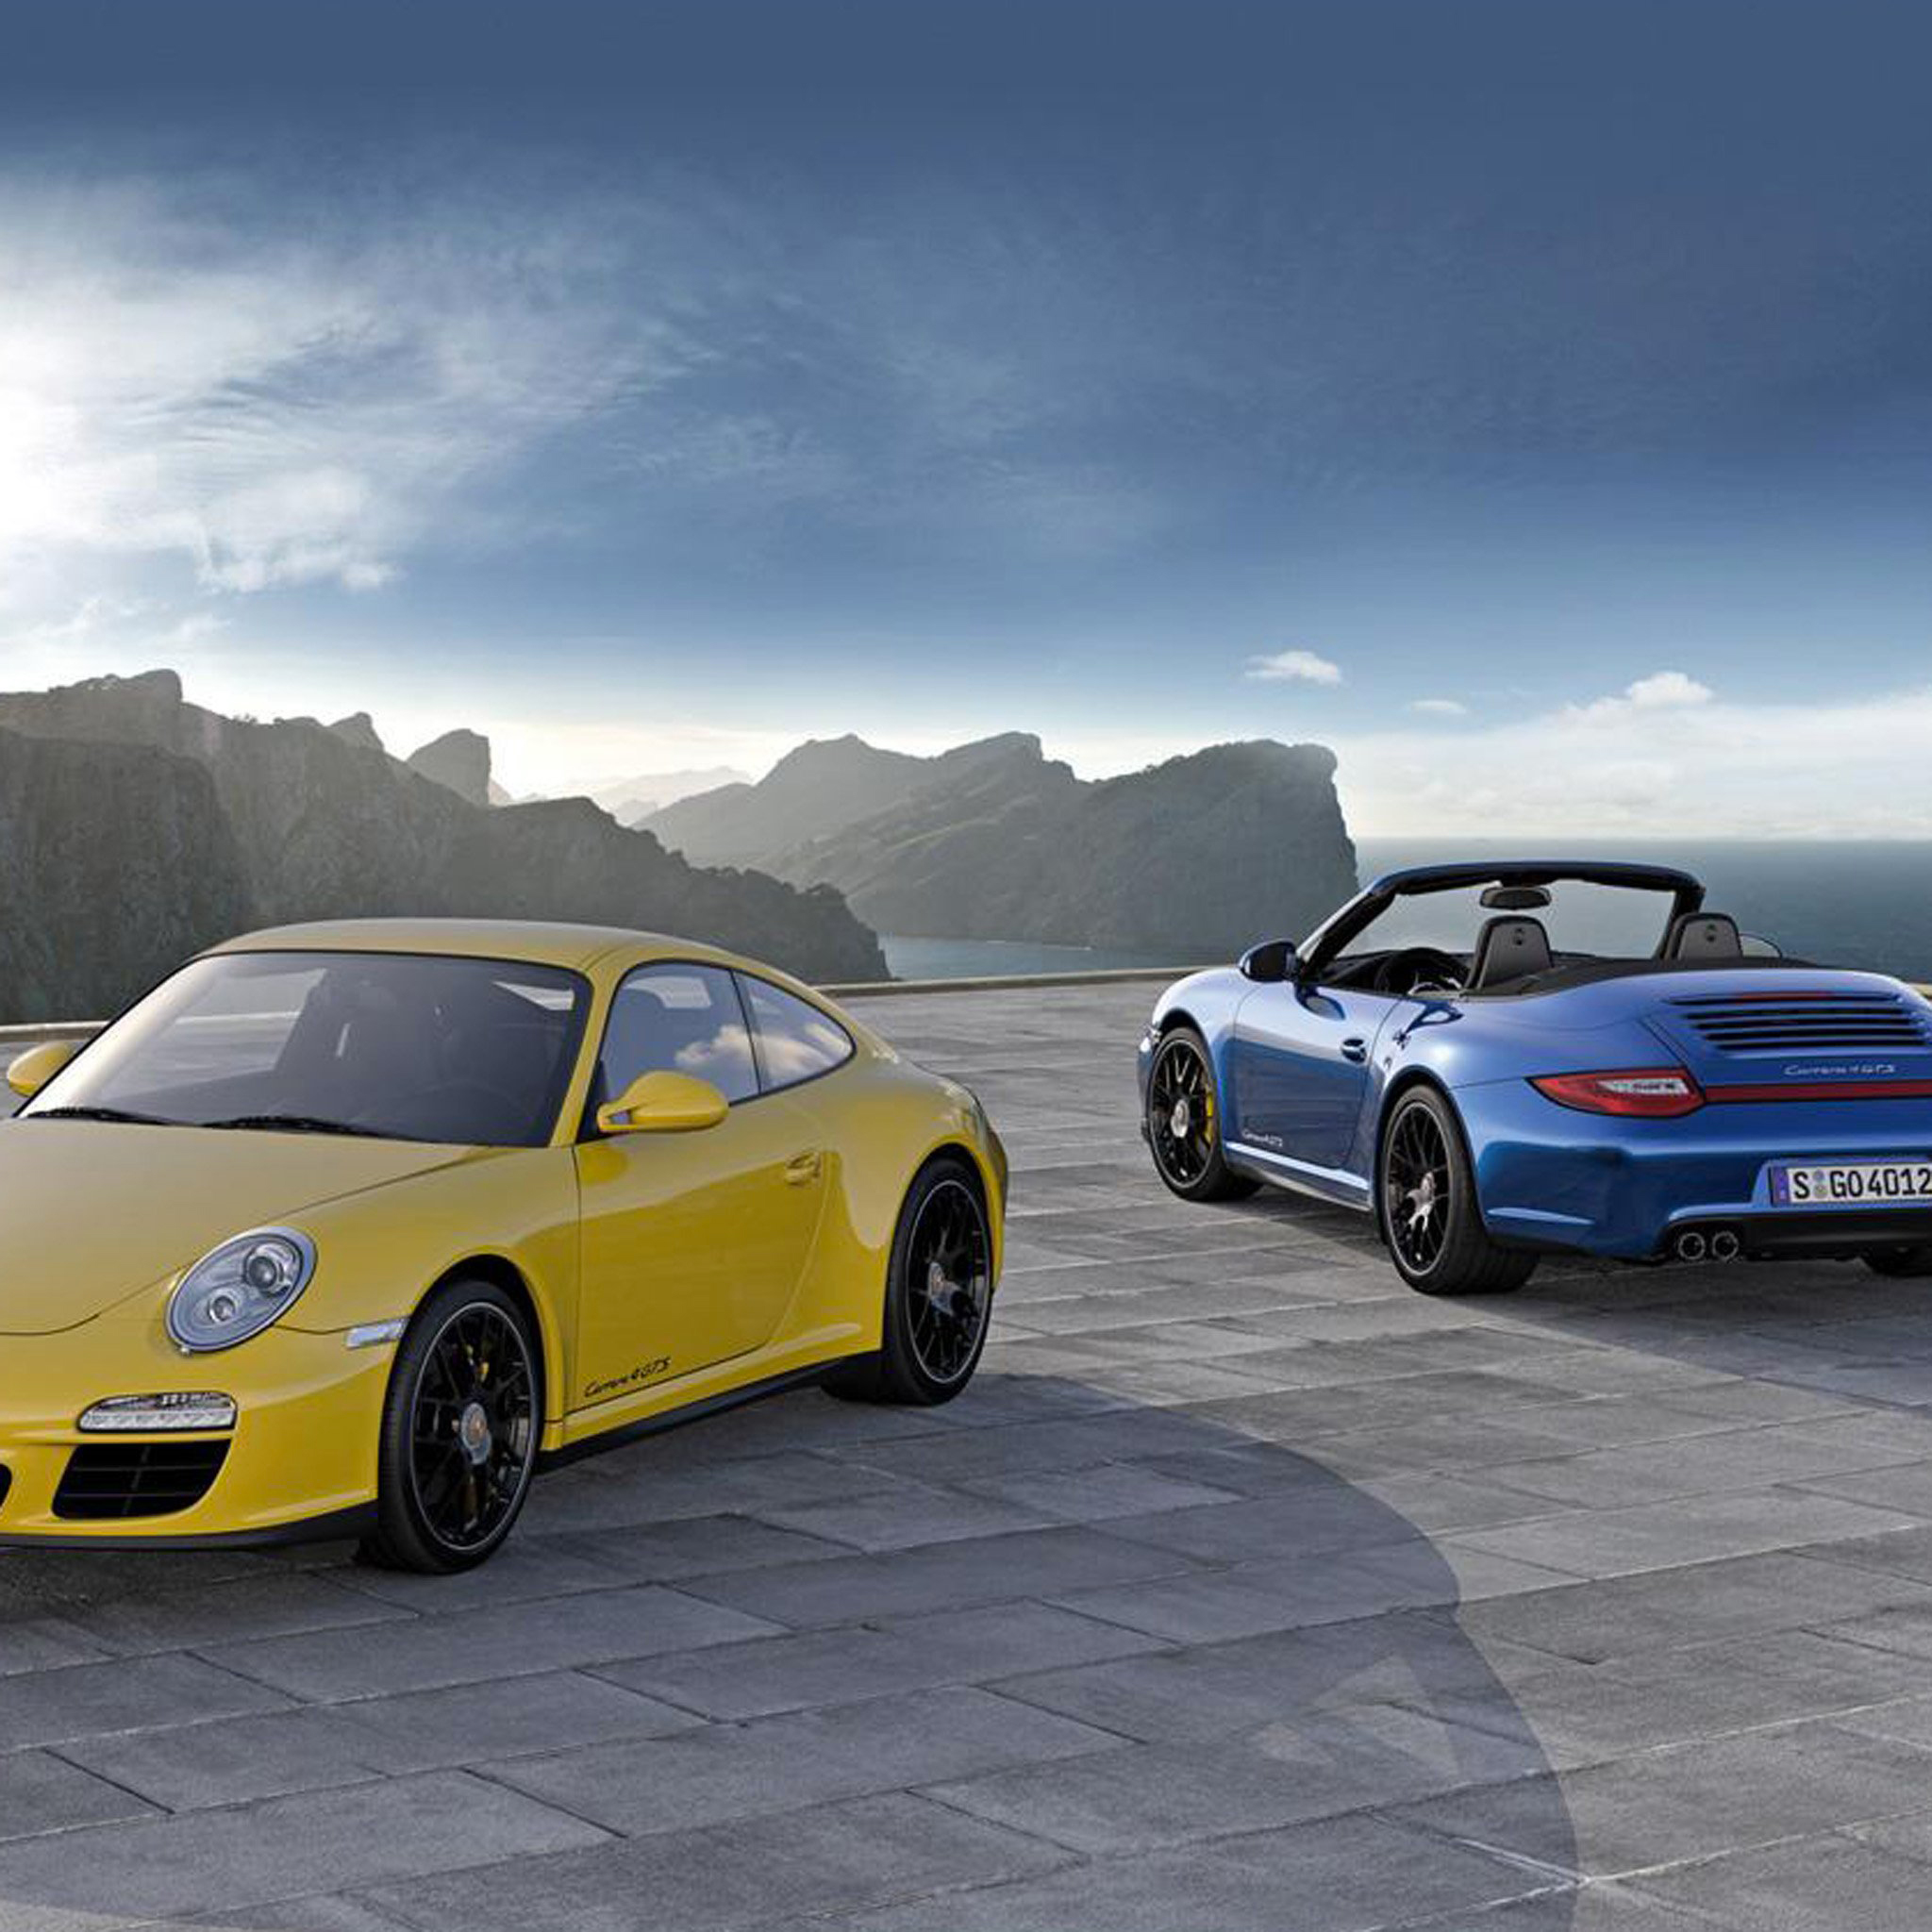 Porsche 911 Carrera 4 Gts 3Wallpapers iPad Retina Porsche 911 Carrera 4 Gts   iPad Retina